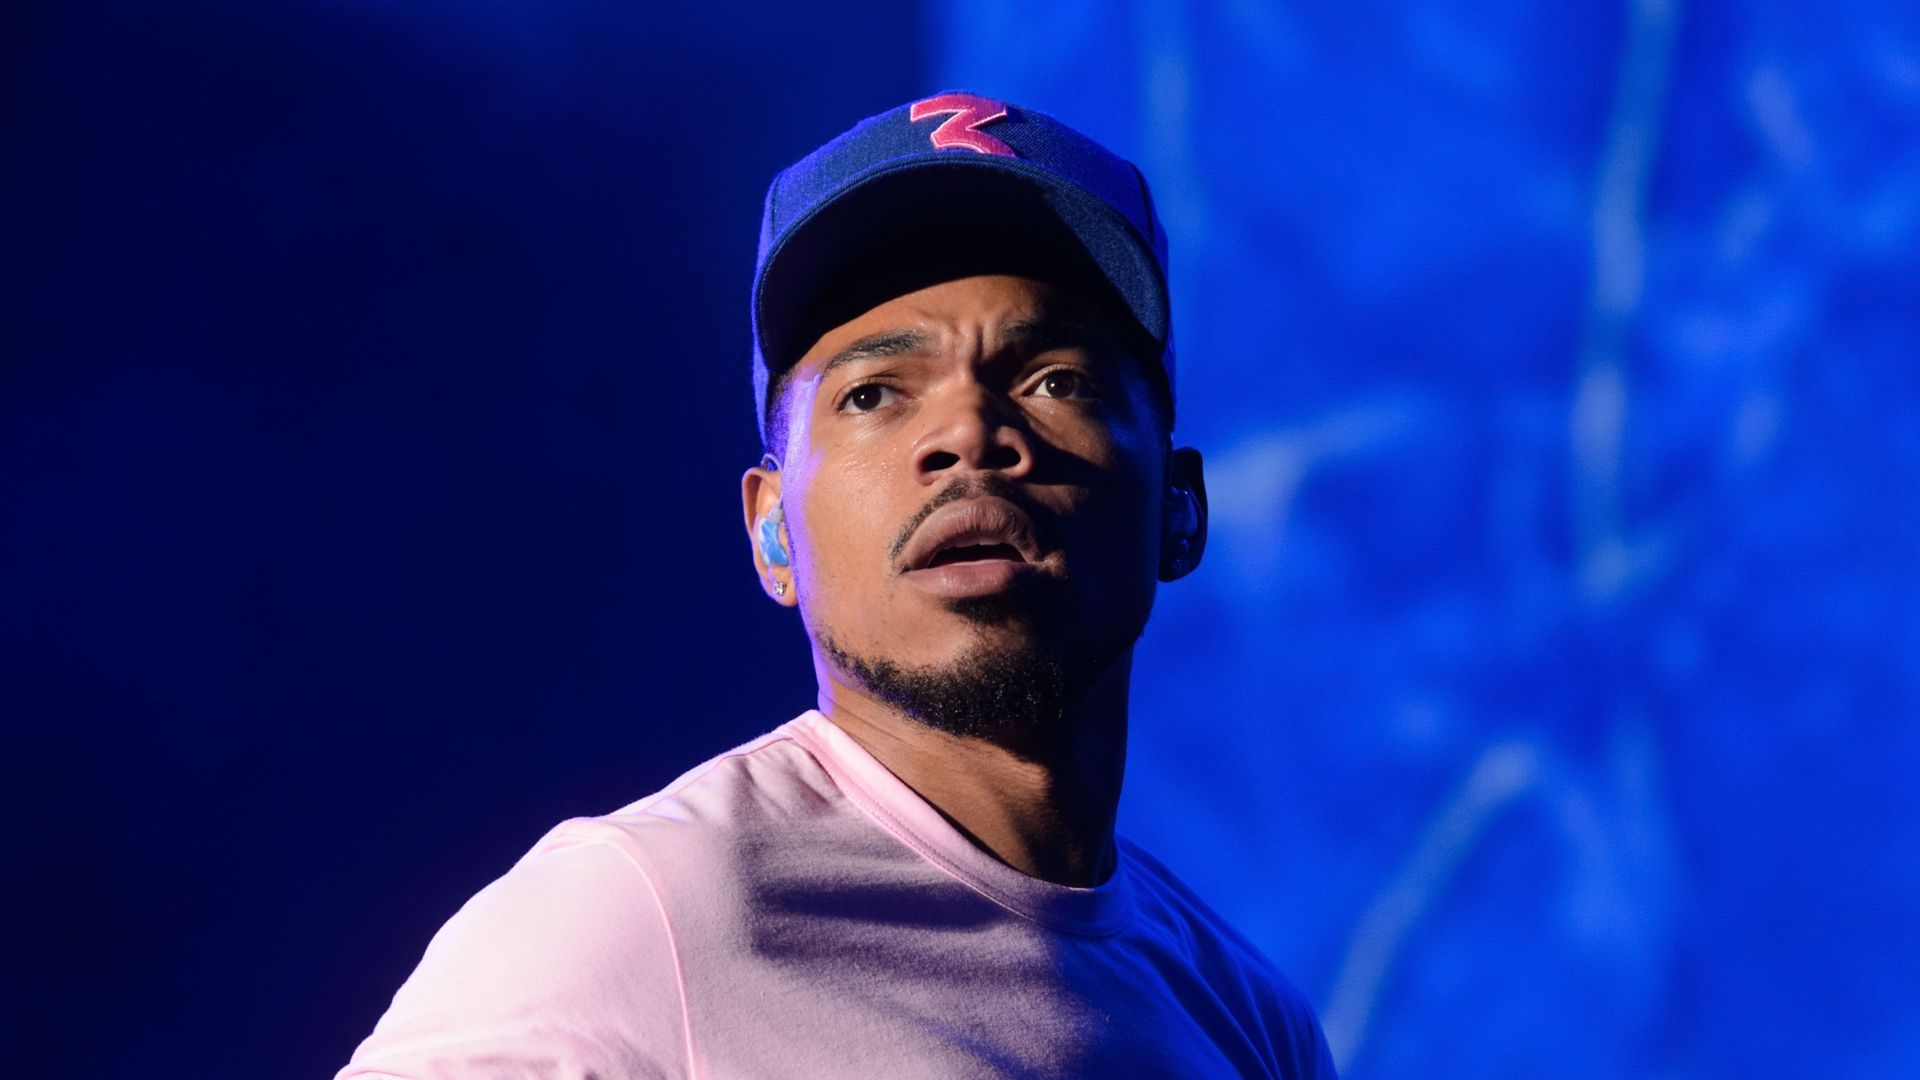 Chance The Rapper Shocks Fans With His Latest Announcement - See The Emotional Message He Shared With Fans